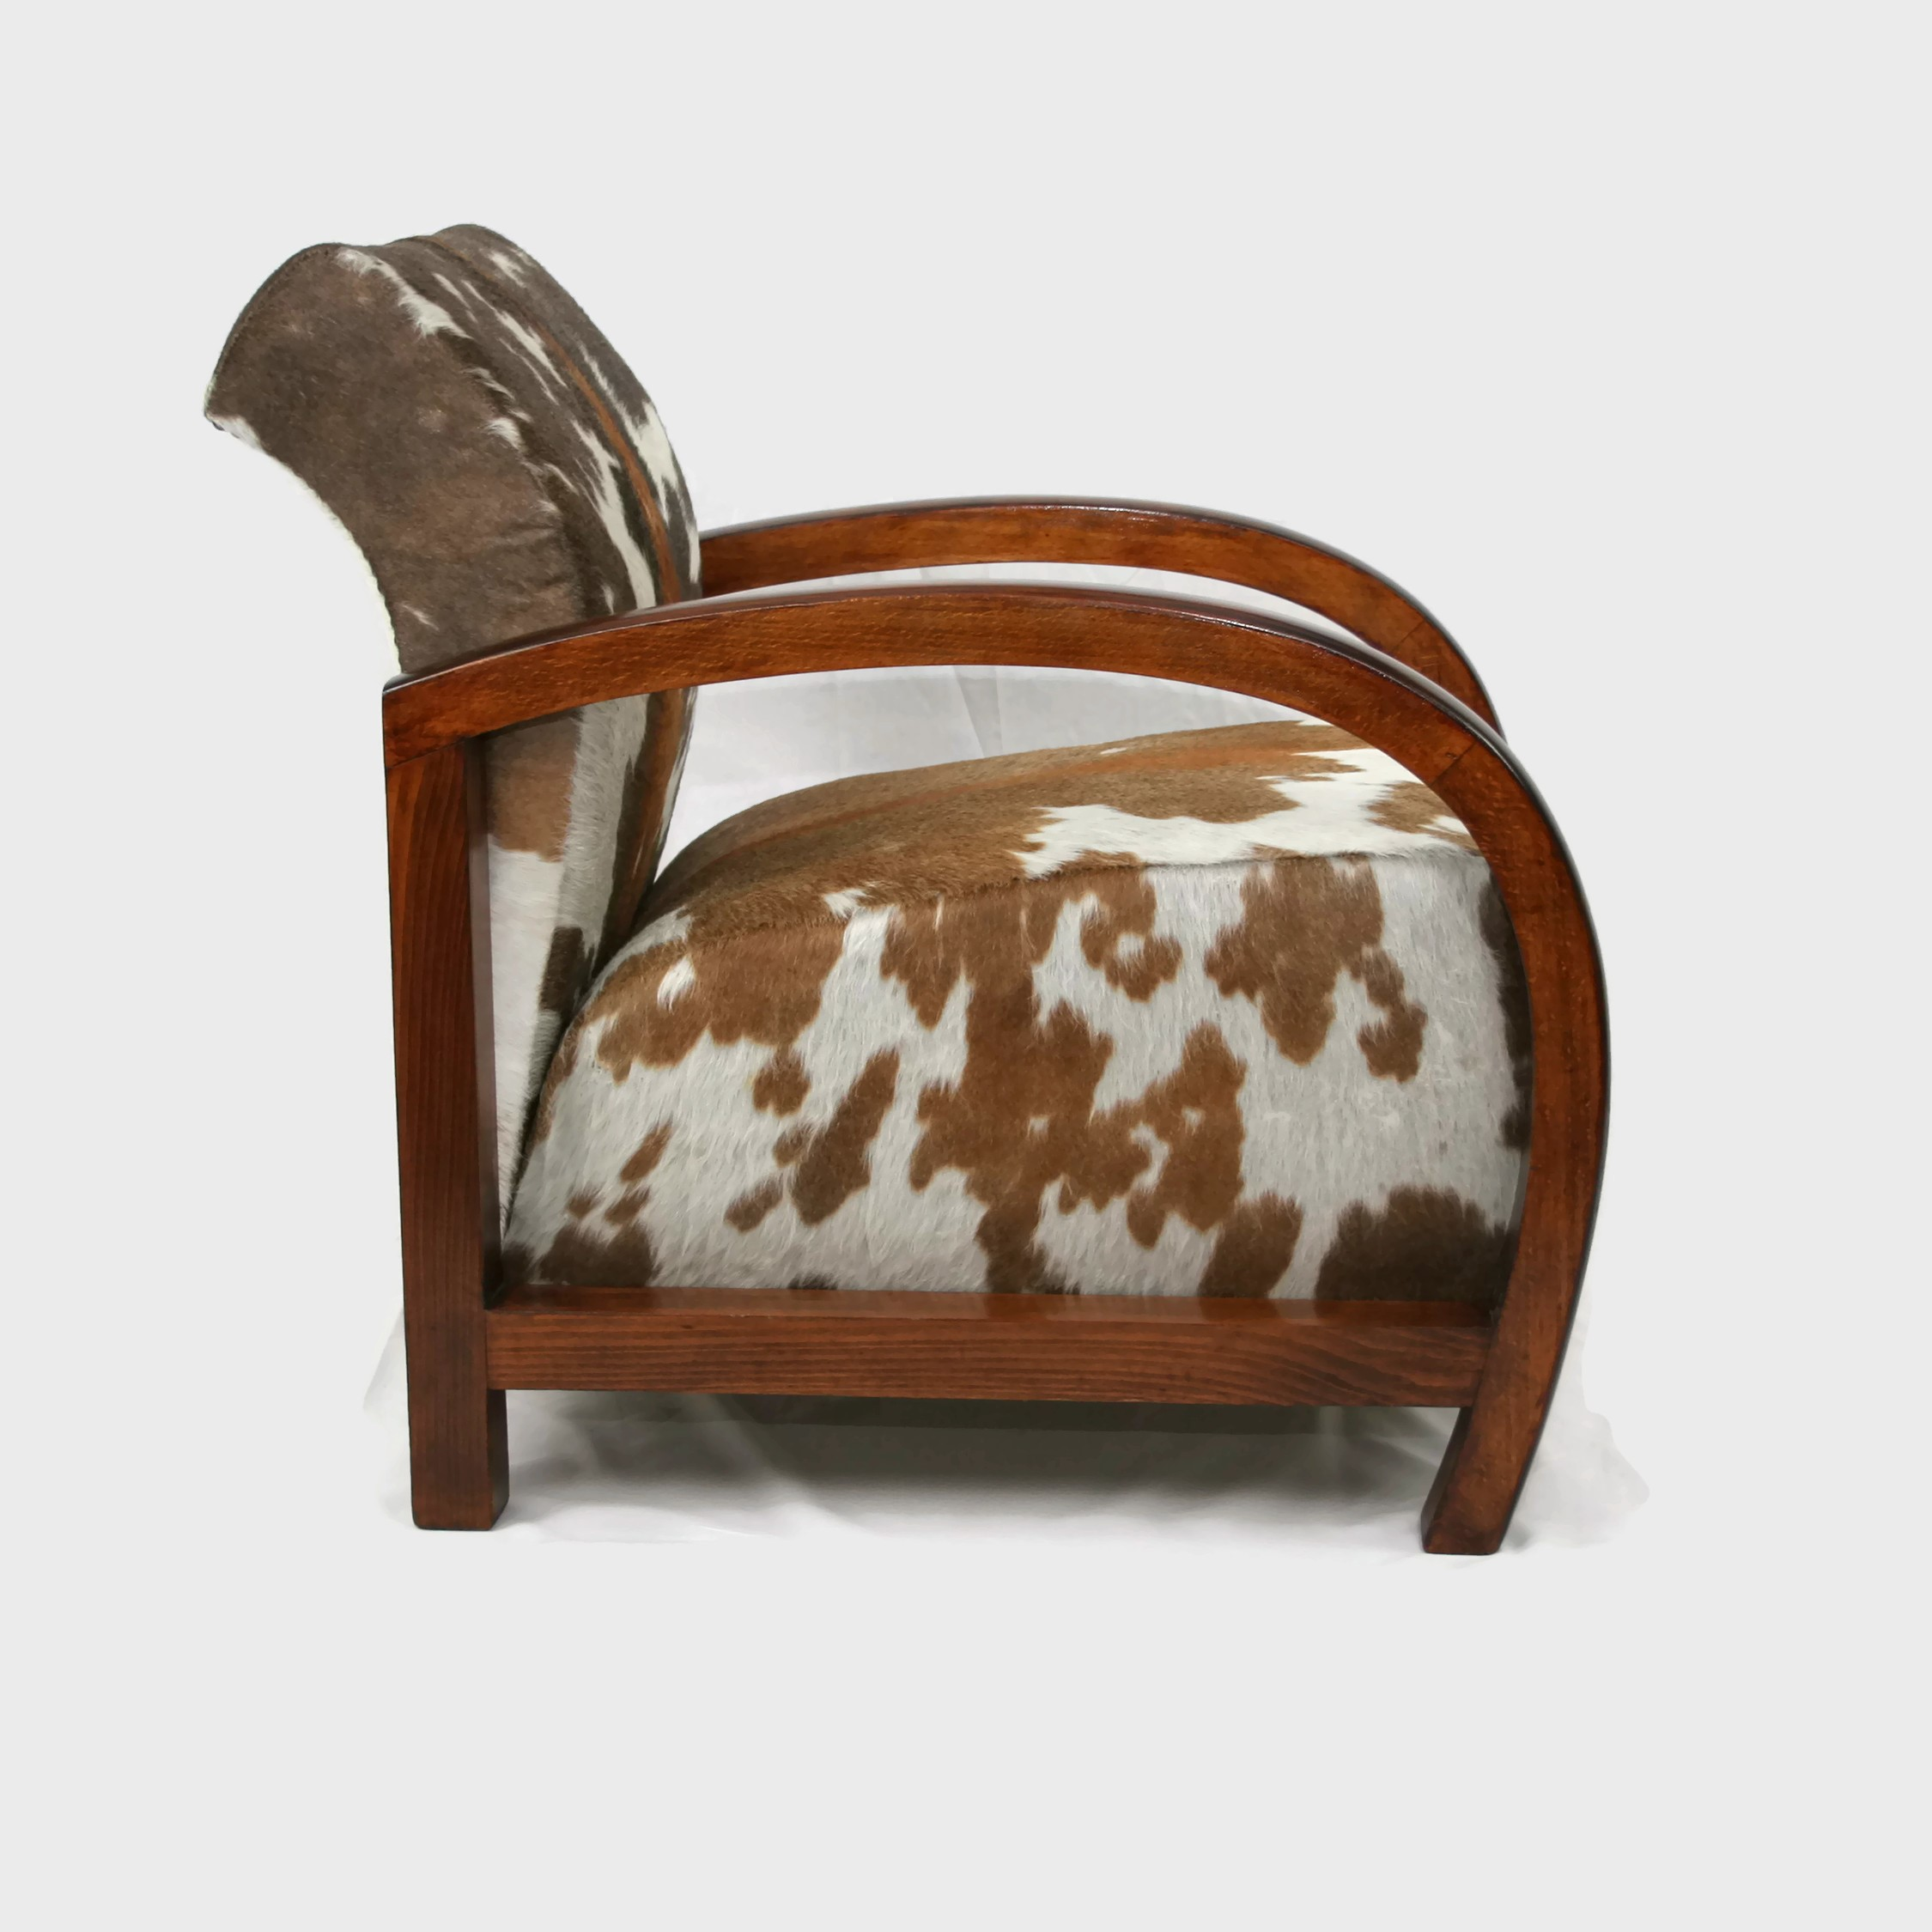 French Art Deco Armchair upholstered in Zulu Cow Hide SOLD